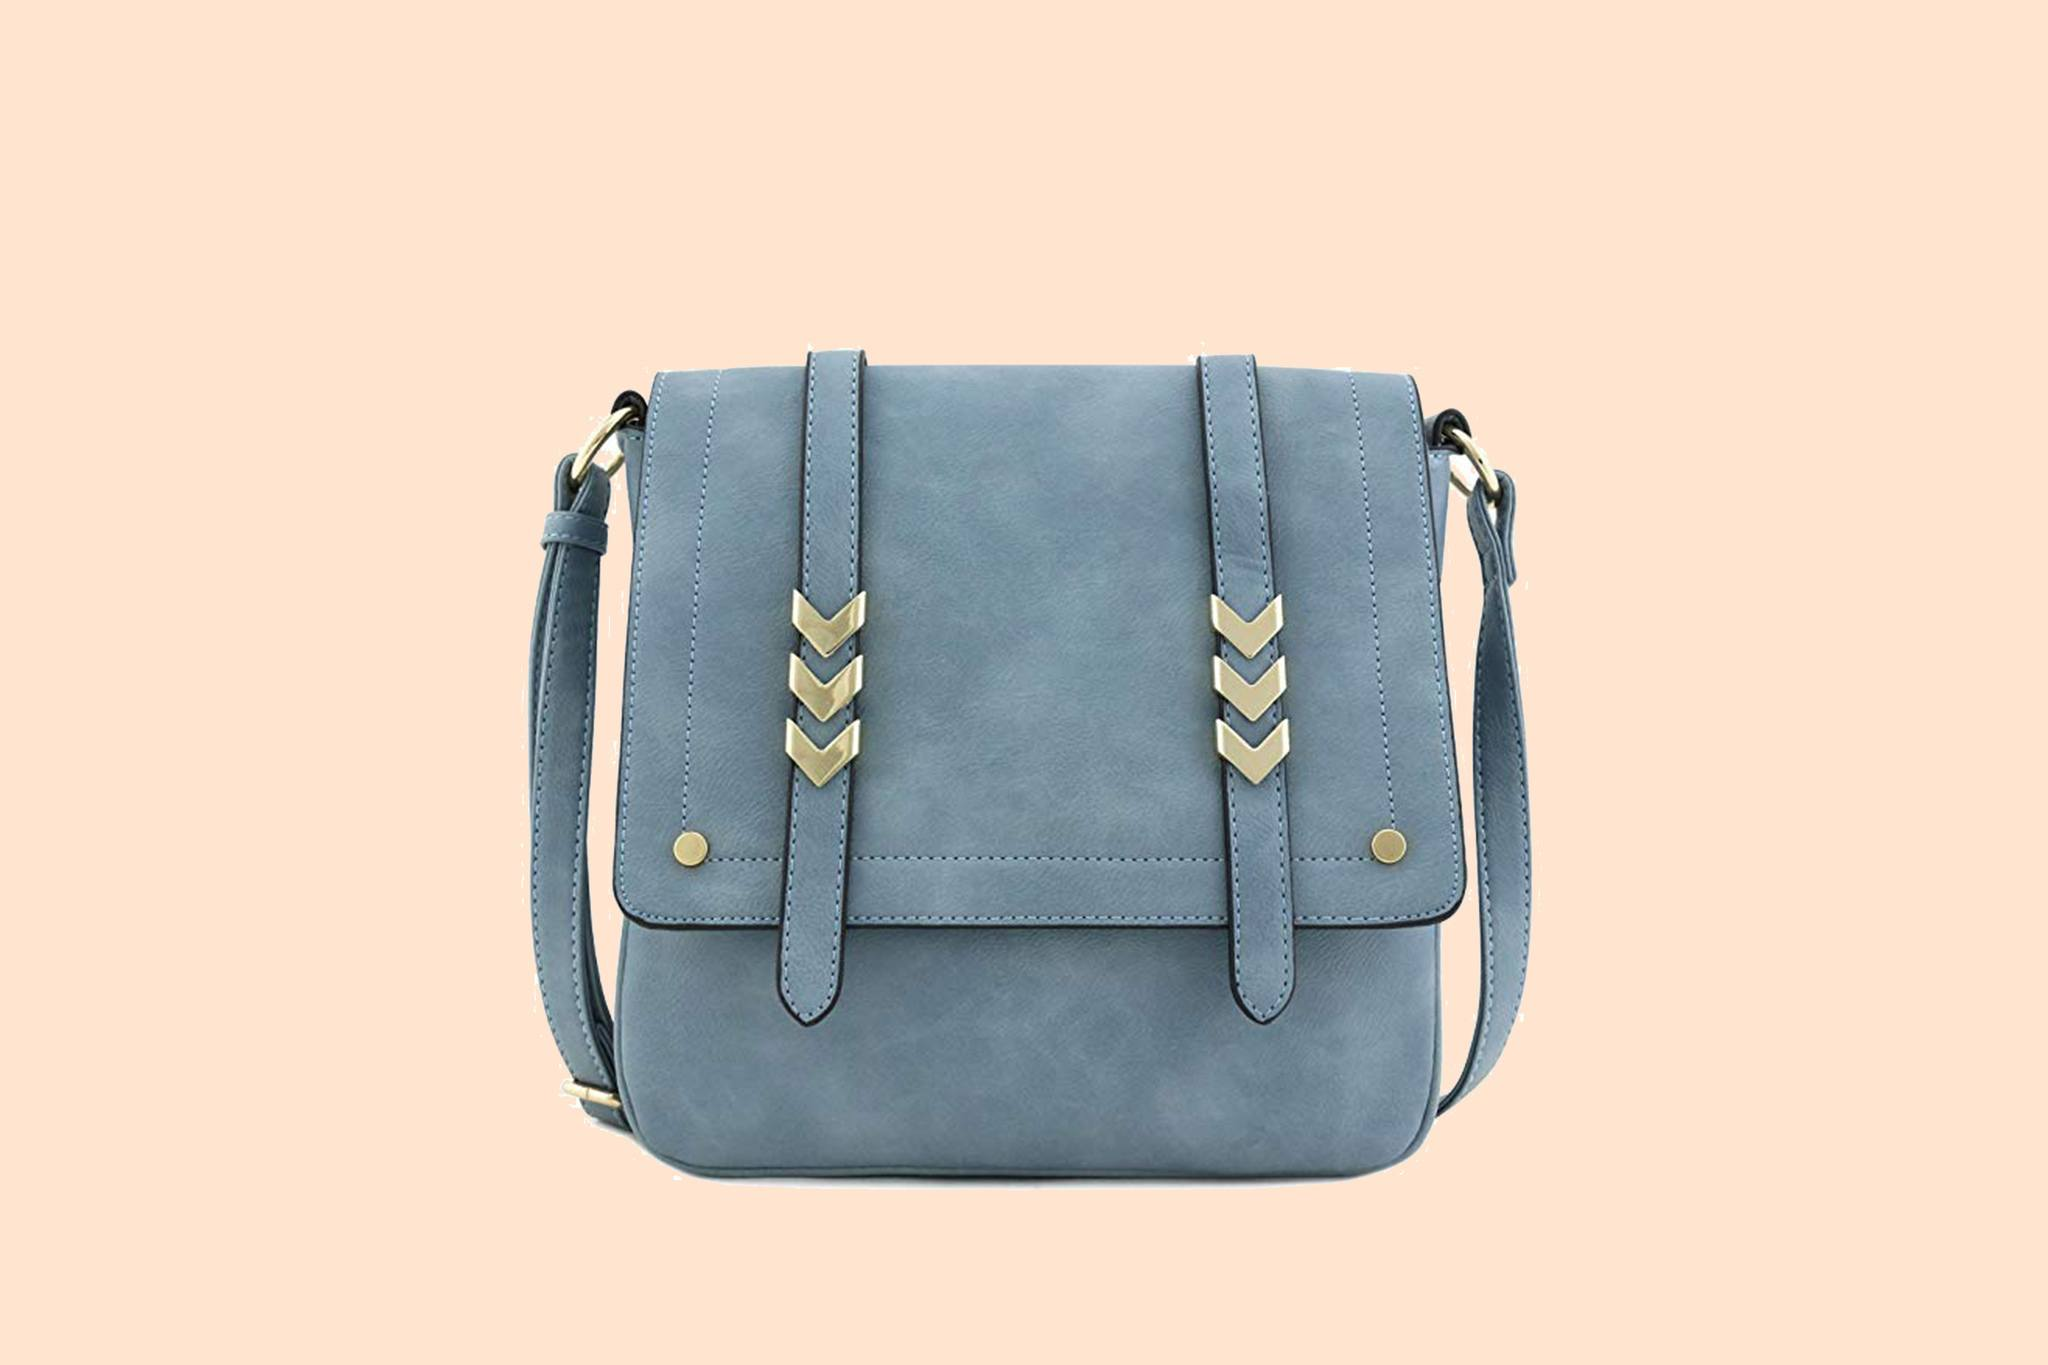 Best travel purses that are cute and anti-theft!